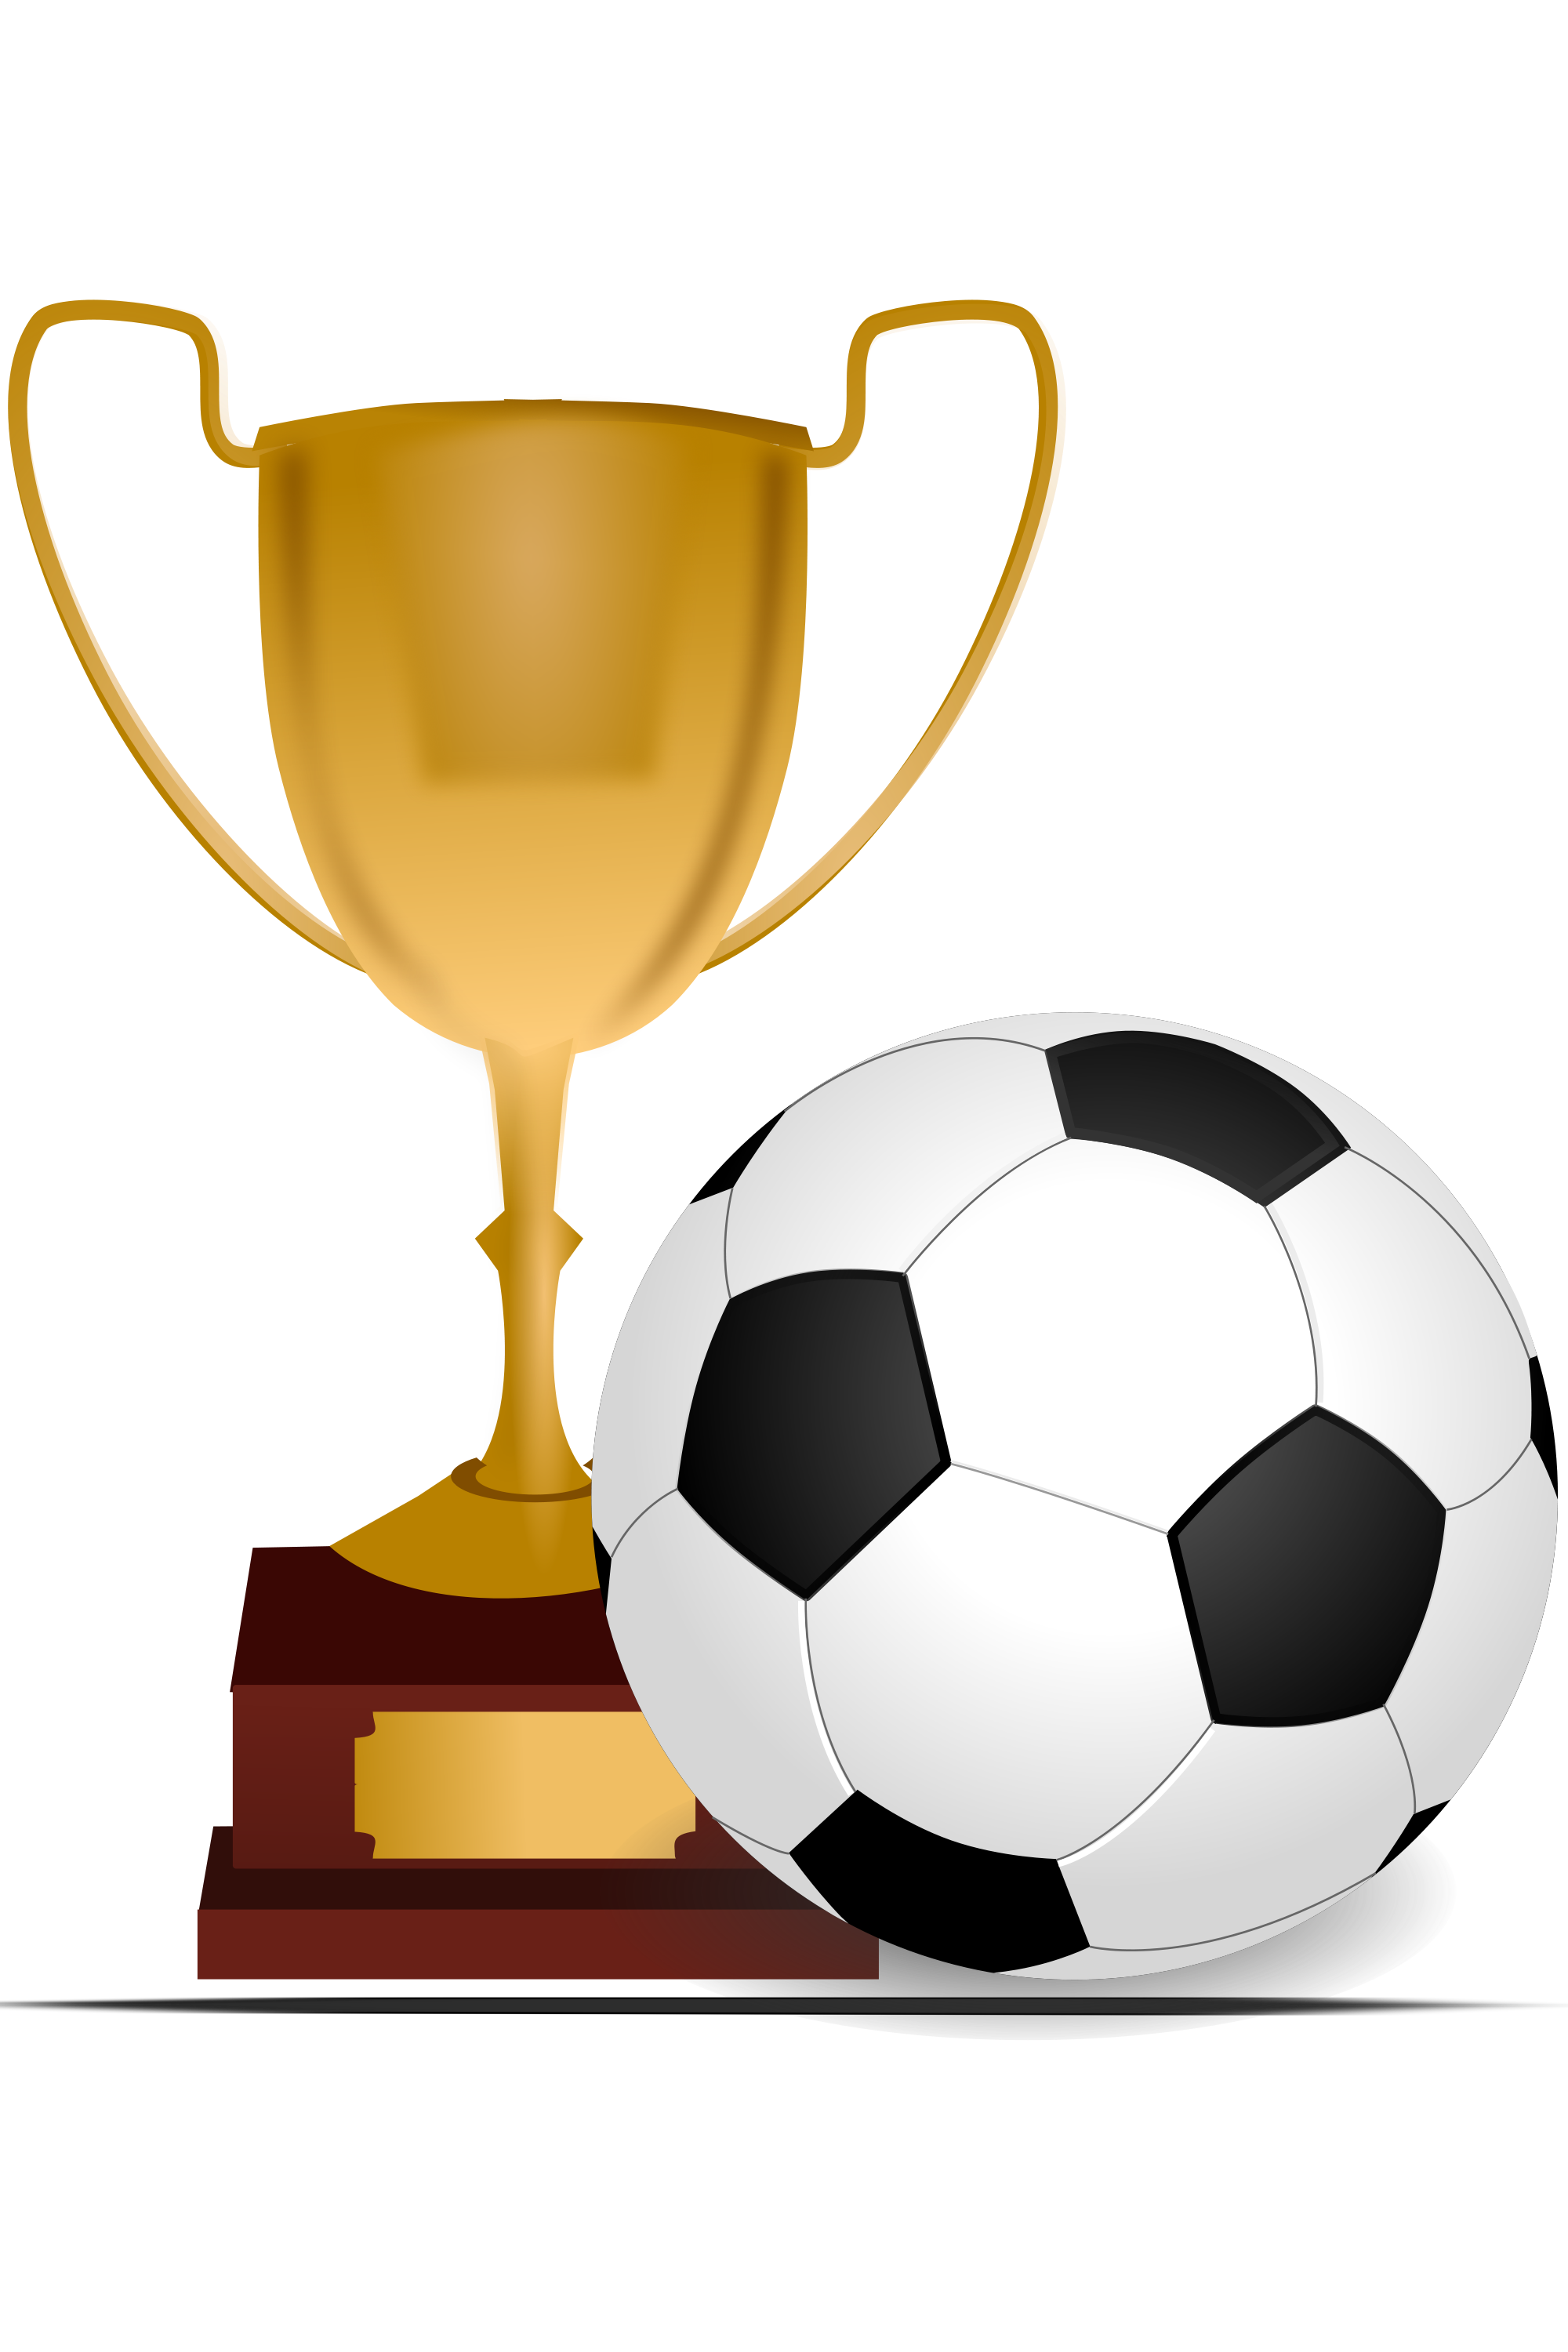 Football trophies clipart clip freeuse File:Football-Cup.svg - Wikimedia Commons clip freeuse